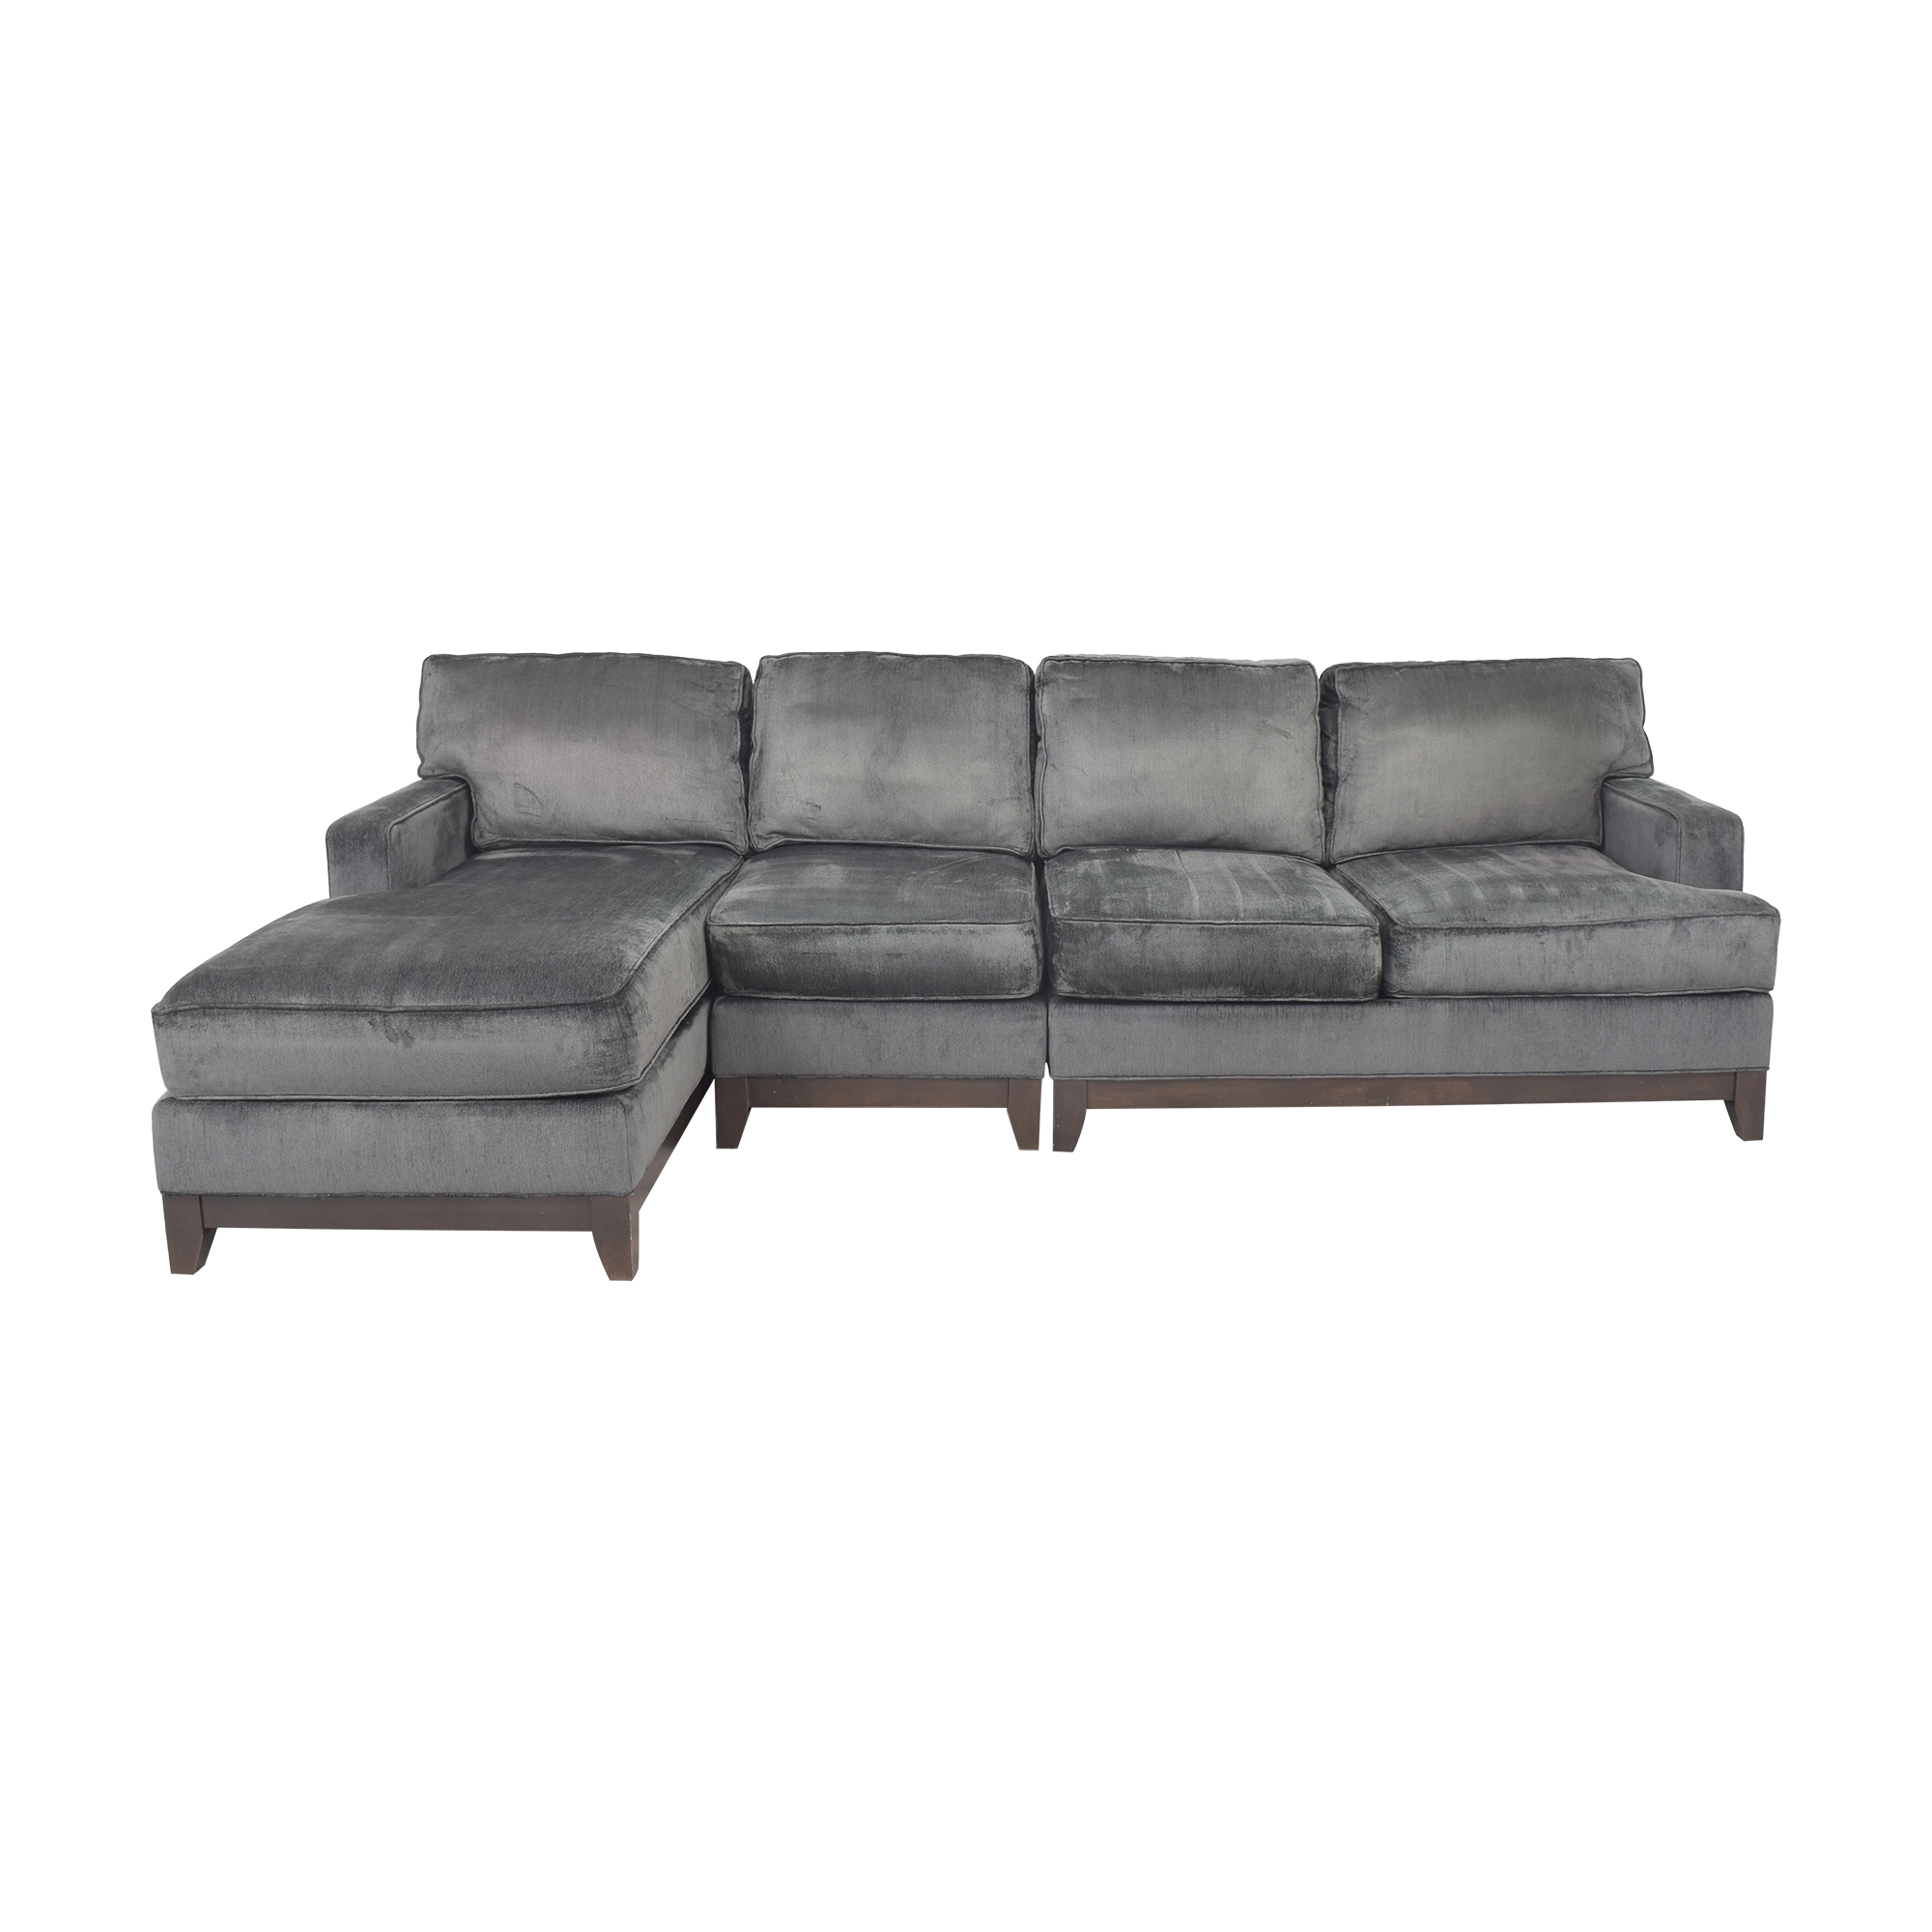 Ethan Allen Sectional Sofa with Chaise Ethan Allen